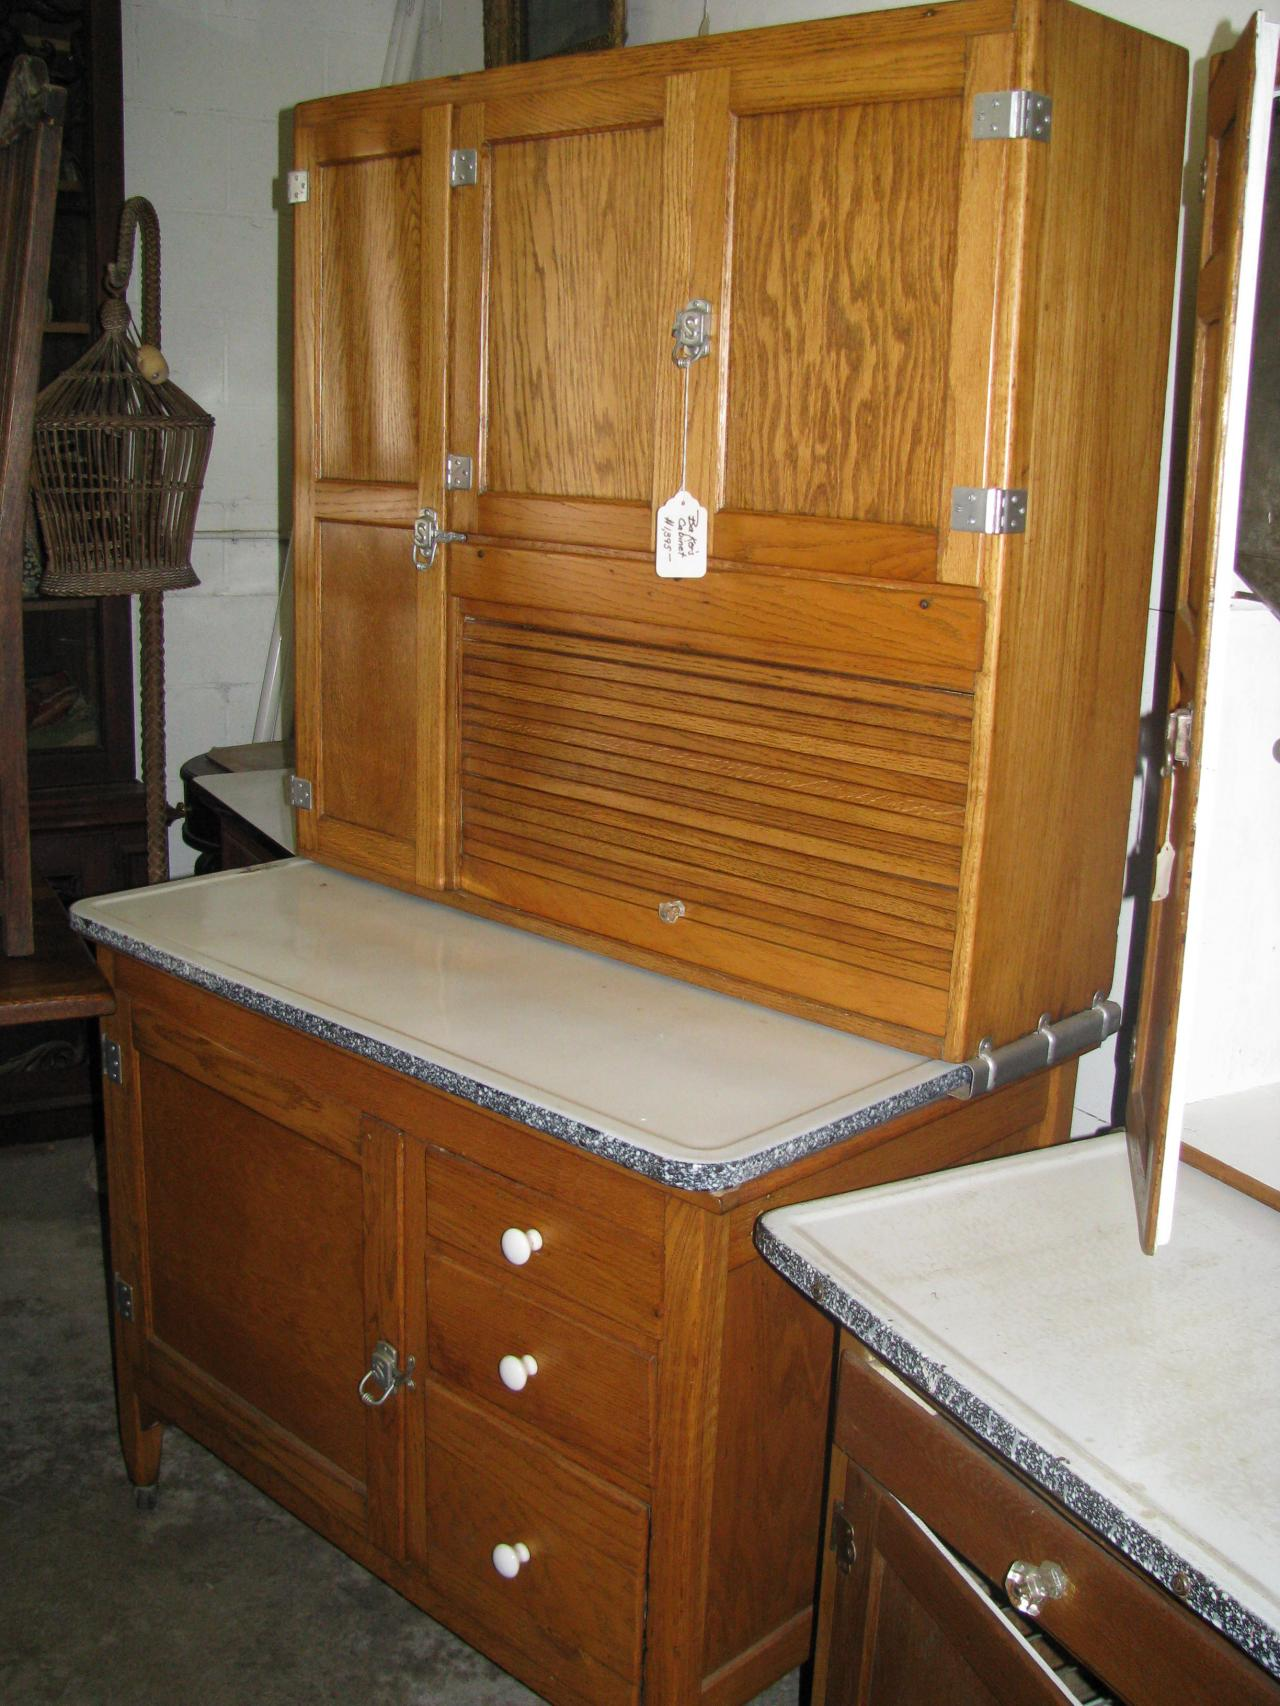 ... Sellers Oak Bakers Cabinet Circa 1916-1920 ... - Z's Antiques & Restorations - Hoosier/Baker's Cabinets Including Yet